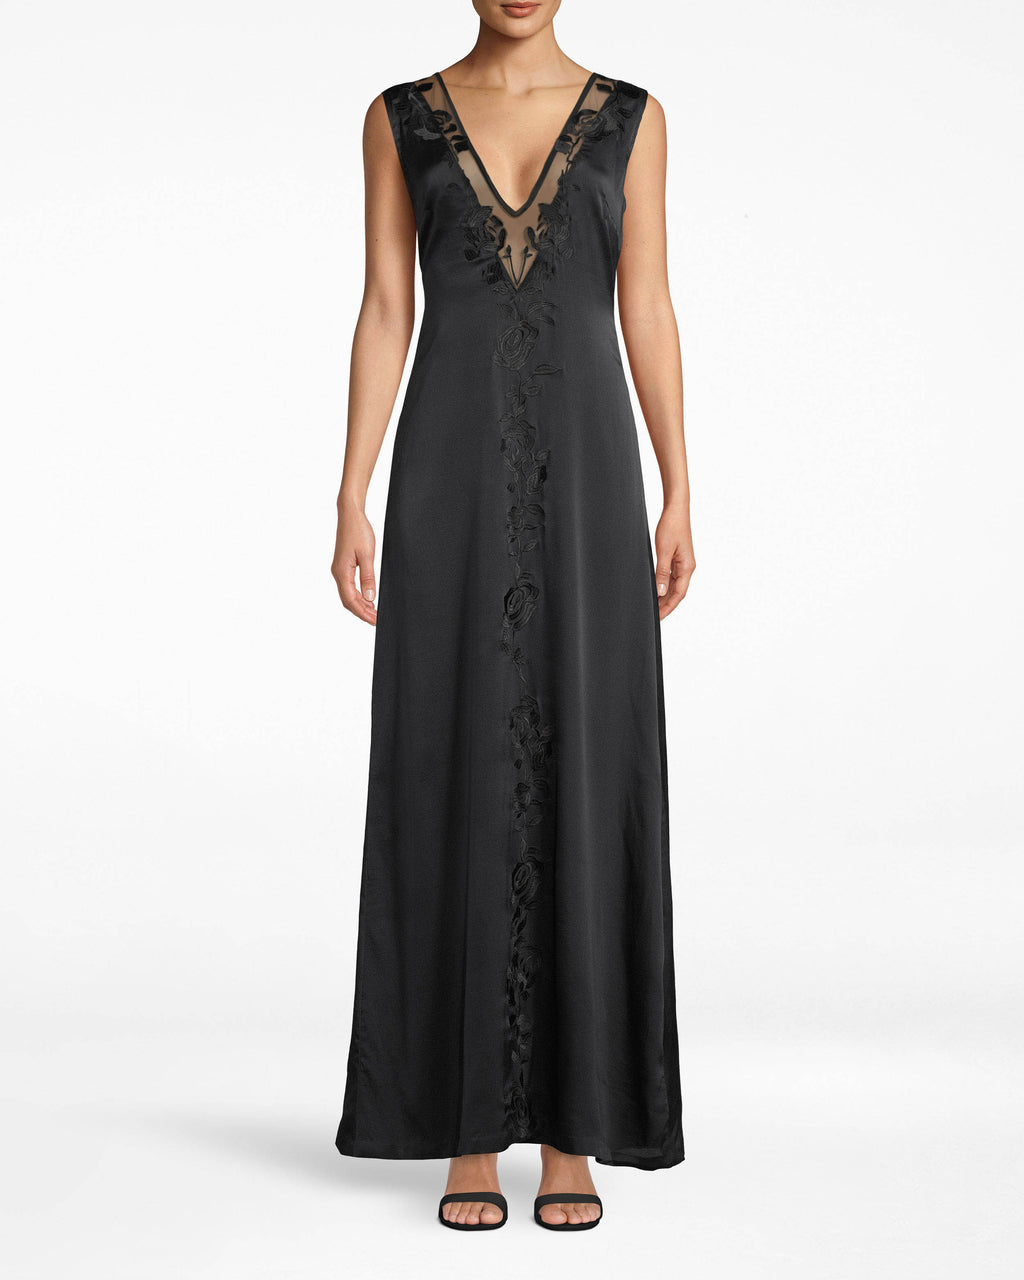 DK20075 - FLOWER EMBROIDERY PLUNGE GOWN - dresses - long - Keep staring. This plunge gown shows off hints of skin around the neckline with mesh. Embroidered details only add to the elegance. Exposed zipper meets lower back.